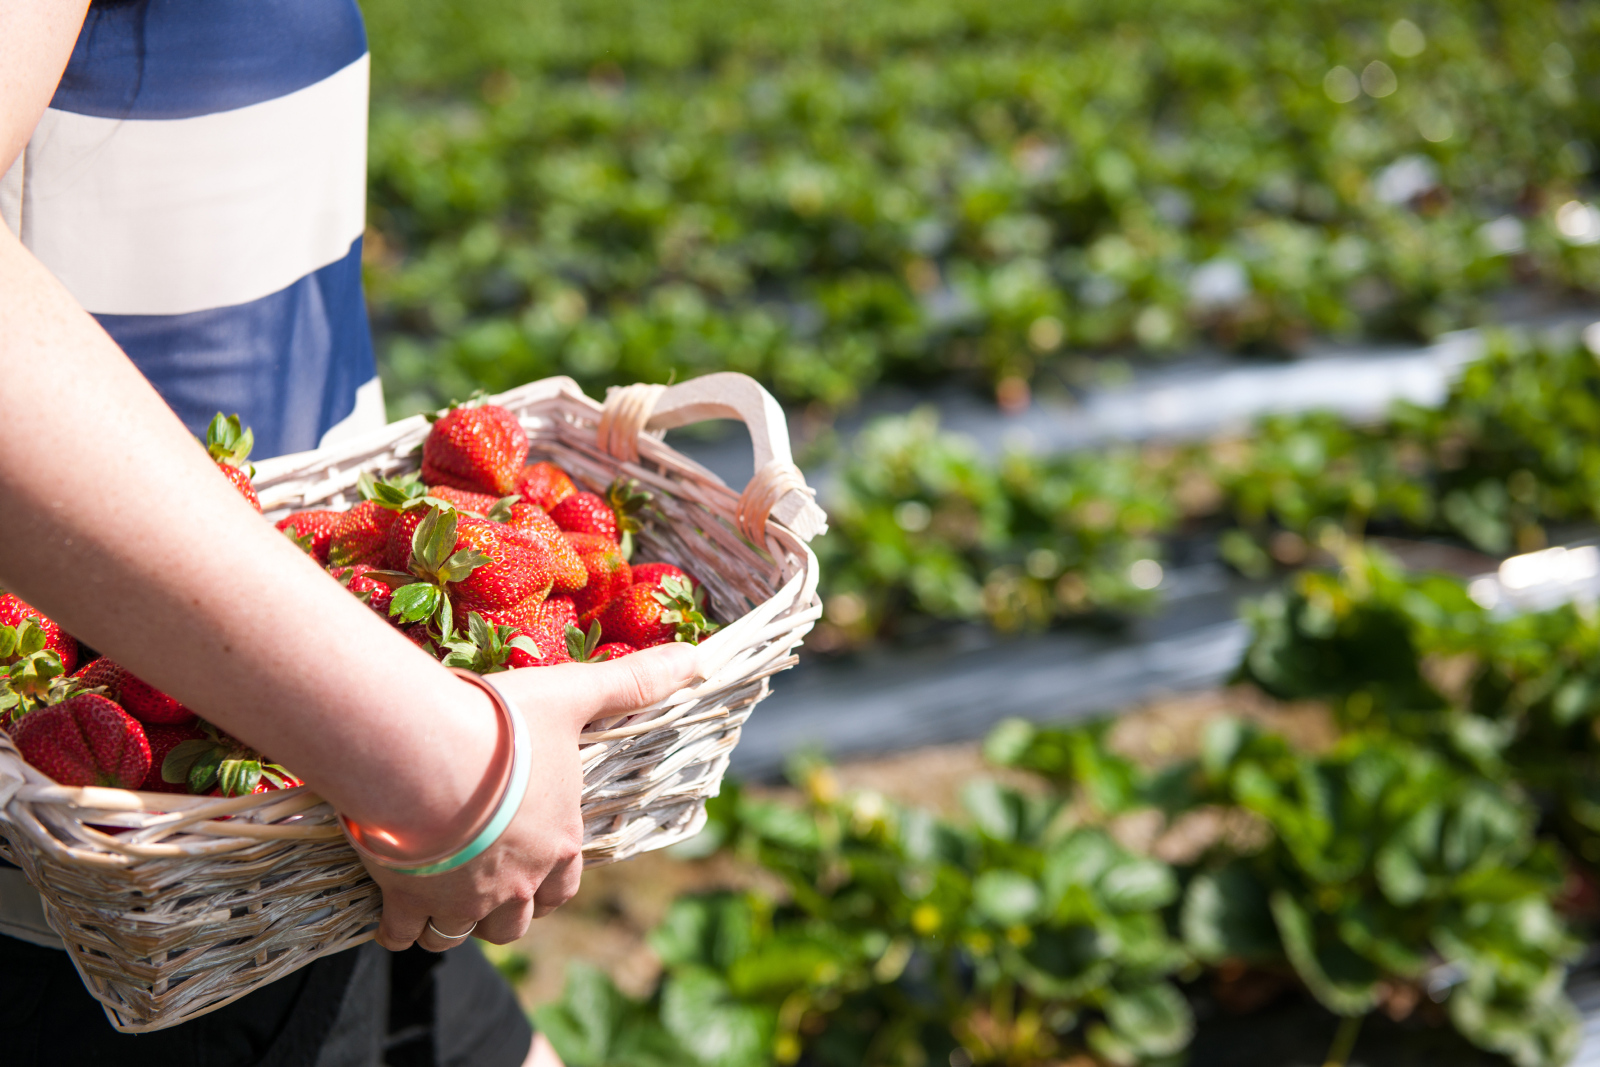 Strawberry Picking at Beerenberg Family Farm in Hahndorf, Adelaide Hills, South Australia